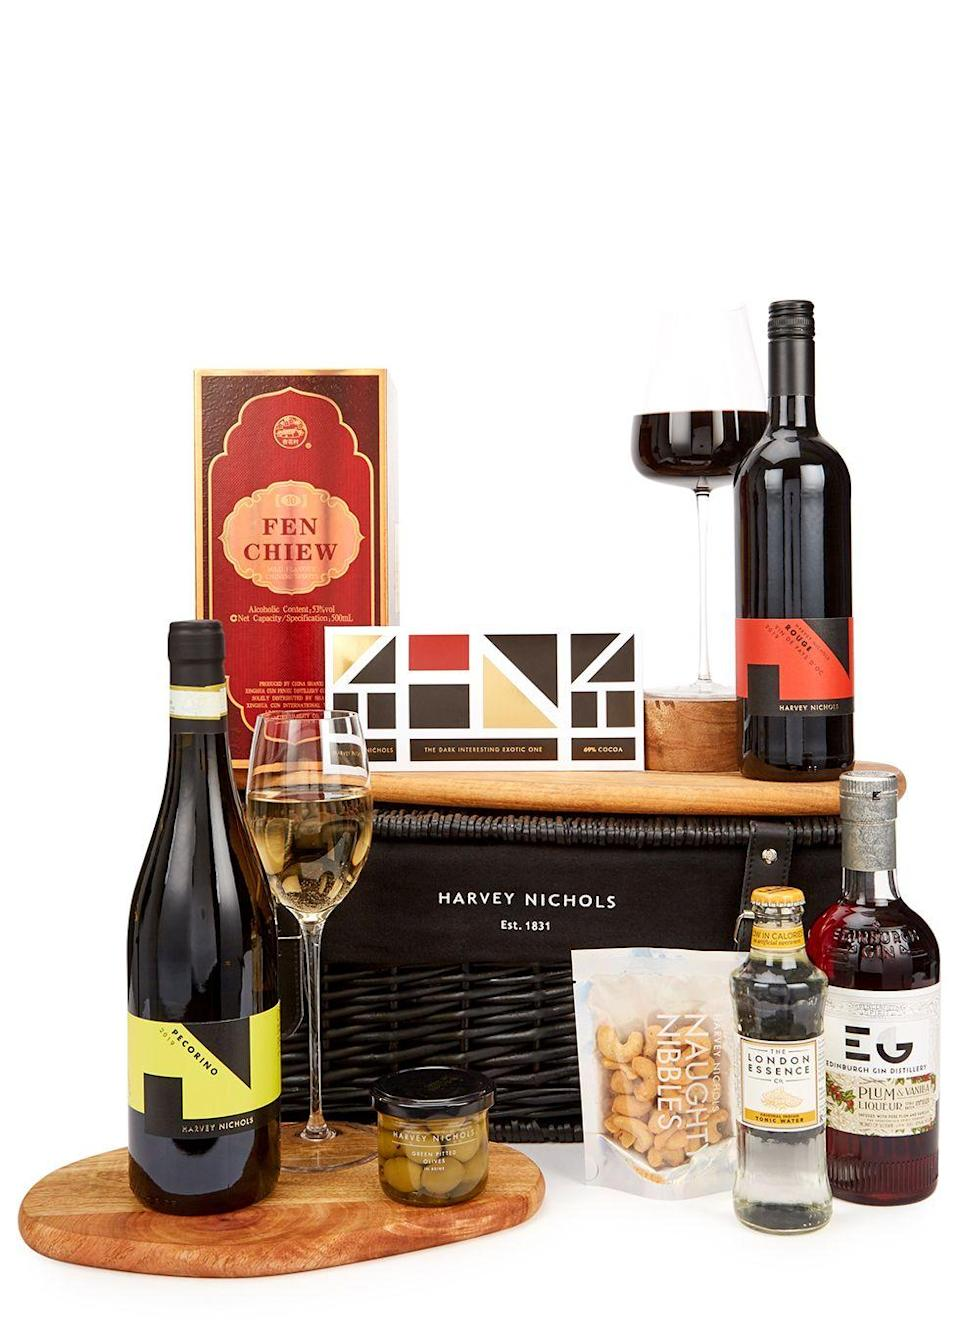 """<p>The past year has required us all to work exceedingly hard – much like the Ox does – and for a well-deserved treat, Harvey Nichols has curated a hamper to welcome the Lunar New Year. Including a traditional 10-year-old Baijiu crafted at Xinghuacun Fenjiu, a distillery whose history dates back six millenia; zestly lime and chilli nuts and dark chocolate, the result is a bundle of cheer with which to greet the year ahead. </p><p>Lunar New Year hamper, £140, Harvey Nichols.</p><p><a class=""""link rapid-noclick-resp"""" href=""""https://go.redirectingat.com?id=127X1599956&url=https%3A%2F%2Fwww.harveynichols.com%2Fbrand%2Fharvey-nichols%2F3330699-lunar-new-year-hamper%2Fp3970234%2F&sref=https%3A%2F%2Fwww.townandcountrymag.com%2Fuk%2Flifestyle%2Fg35176055%2F13-ways-to-celebrate-lunar-new-year%2F"""" rel=""""nofollow noopener"""" target=""""_blank"""" data-ylk=""""slk:SHOP NOW"""">SHOP NOW</a></p>"""